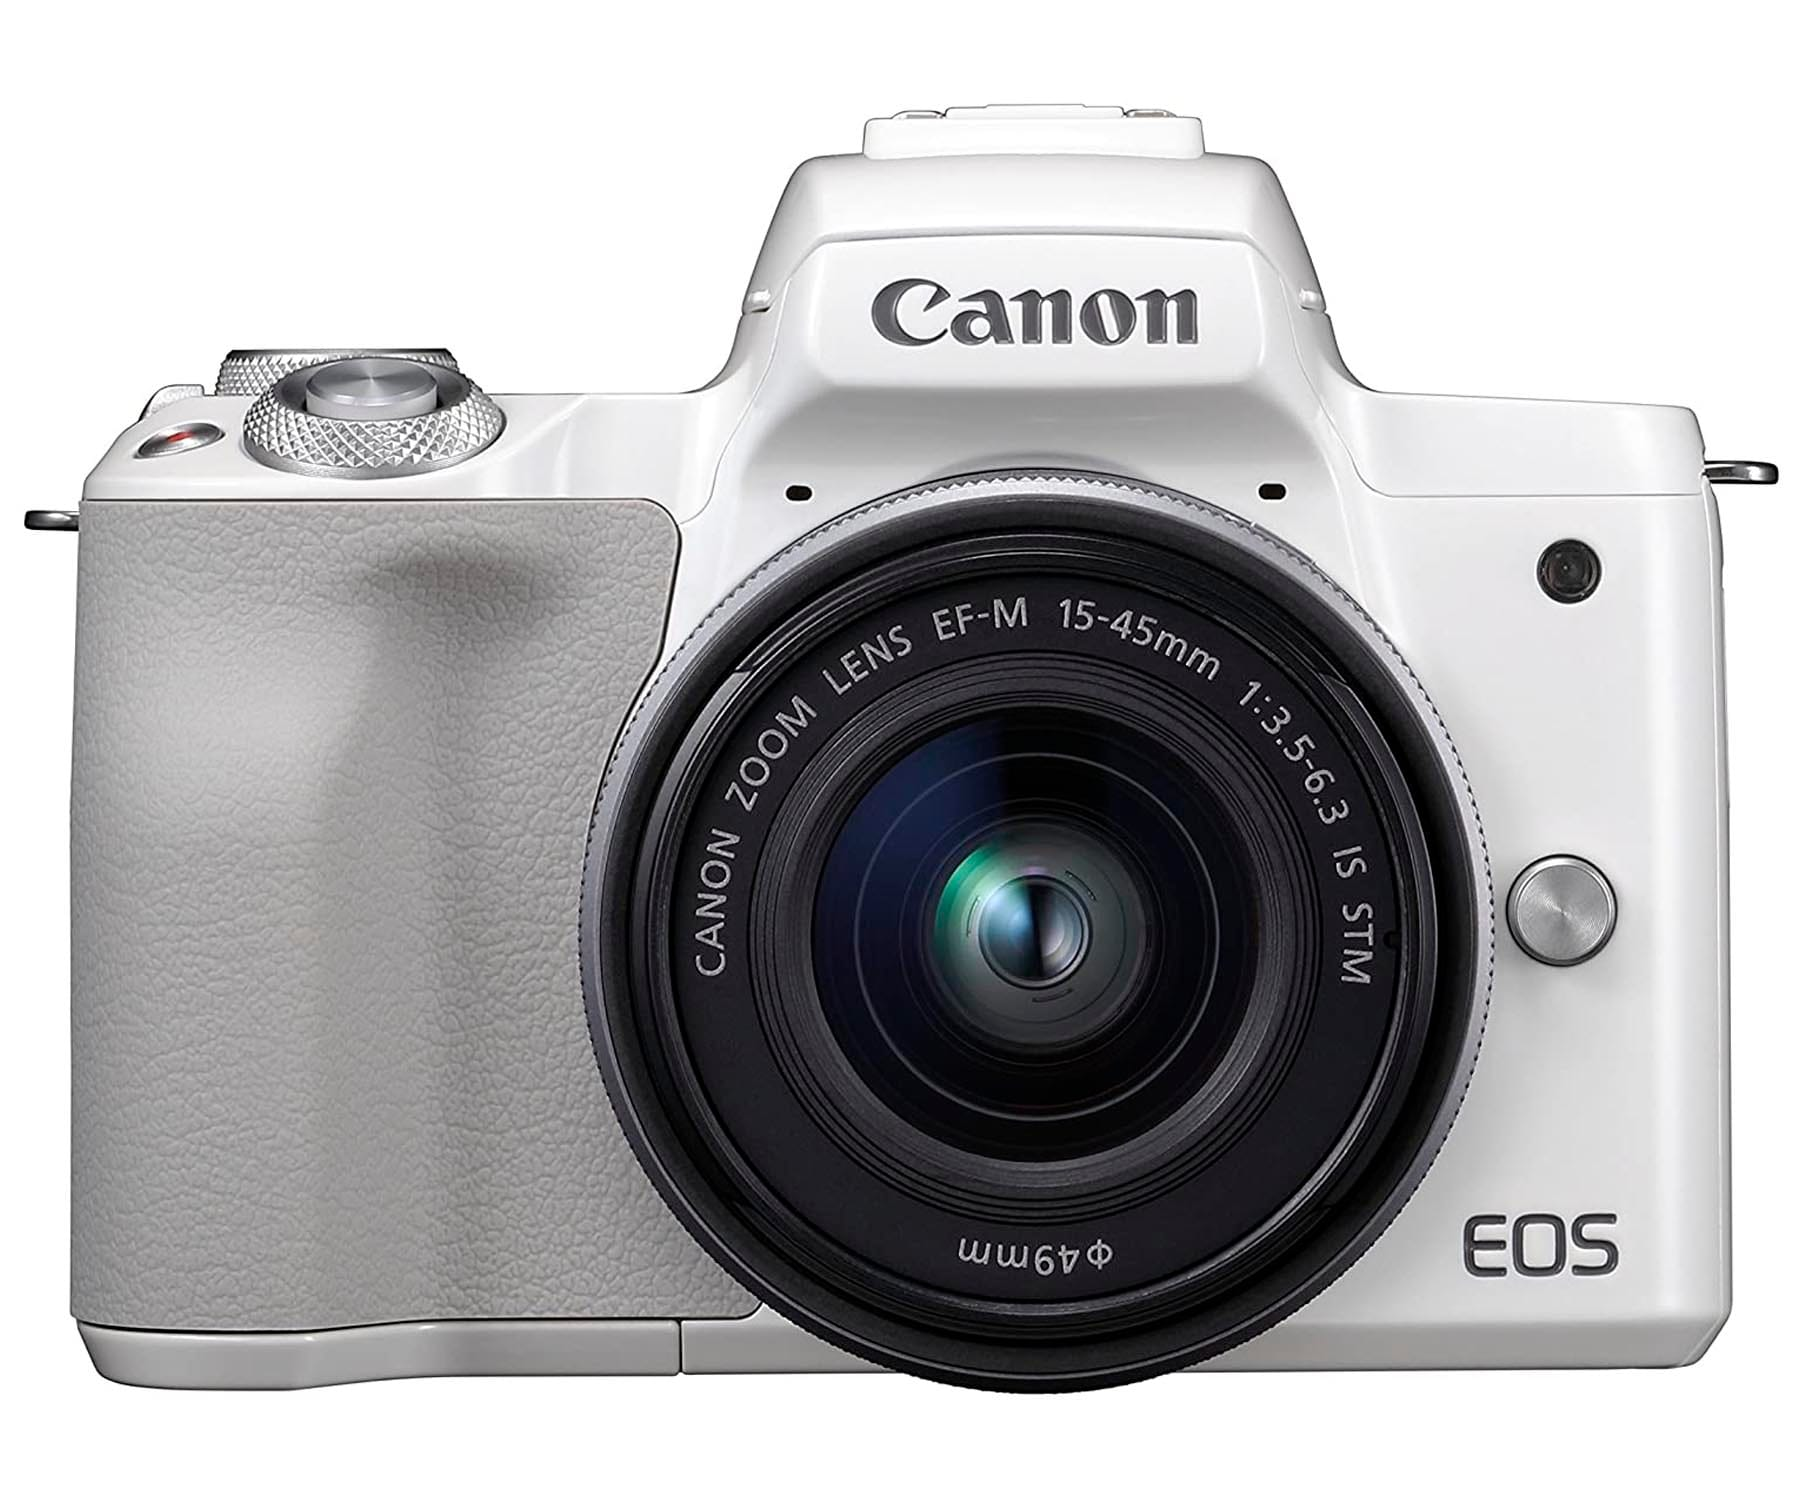 CANON KIT EOS M50 BLANCO CÁMARA 24.1MP 4K DIGIC 8 WIFI NFC BLUETOOTH + OBJETIVO EF-M 15-45mm